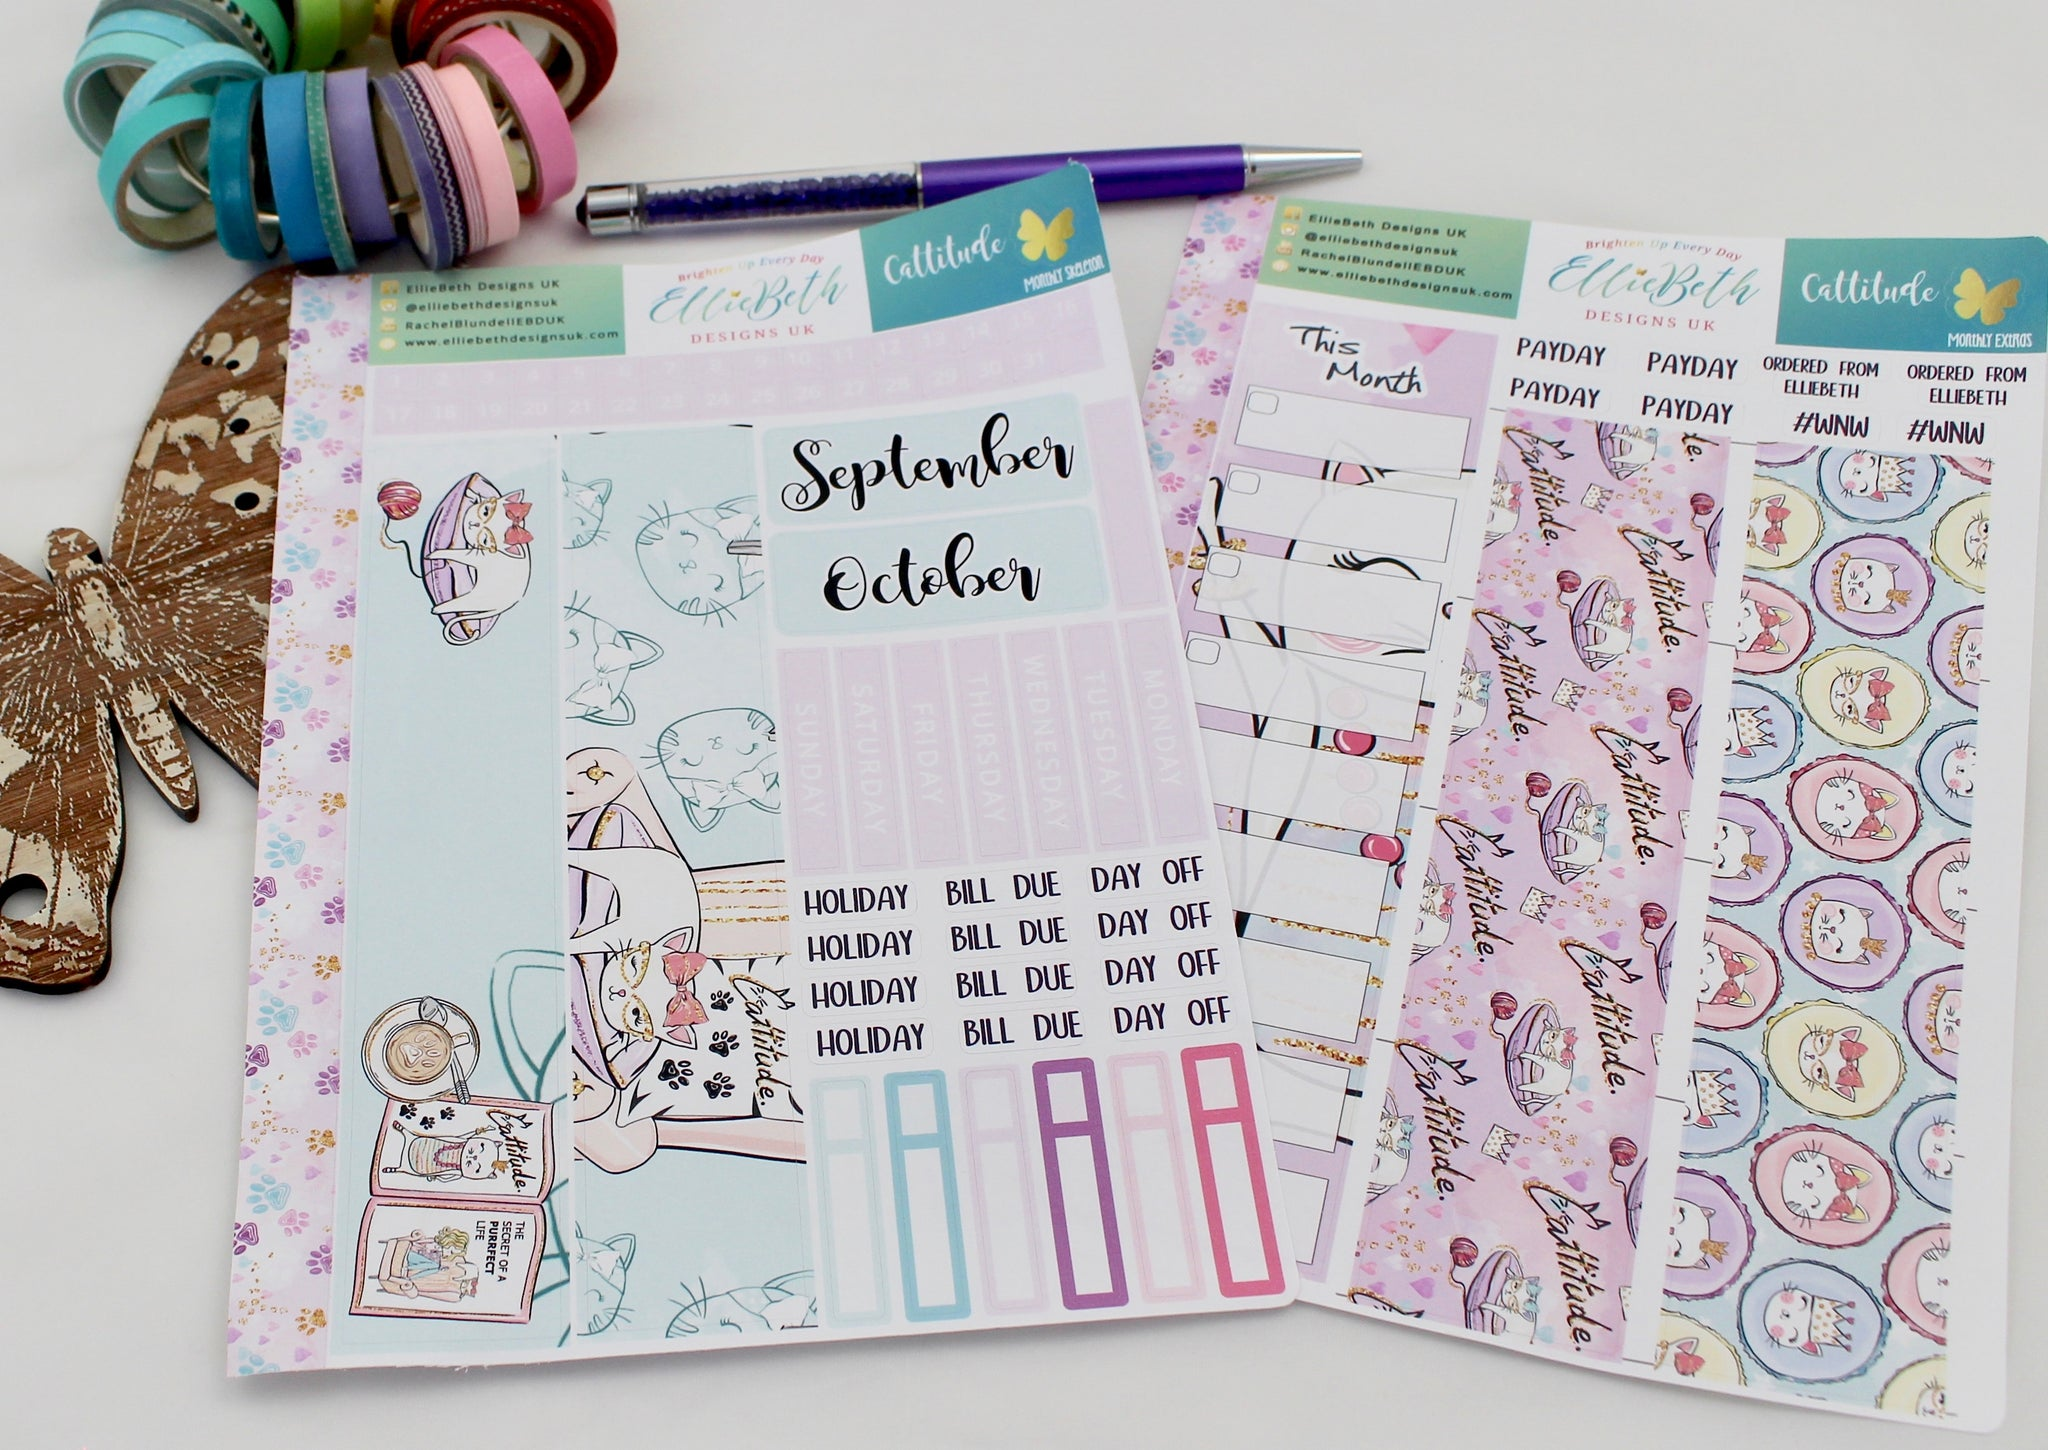 'Cattitude' - Monthly View Kit -  A5 binder ready planner stickers - EllieBeth Designs UK